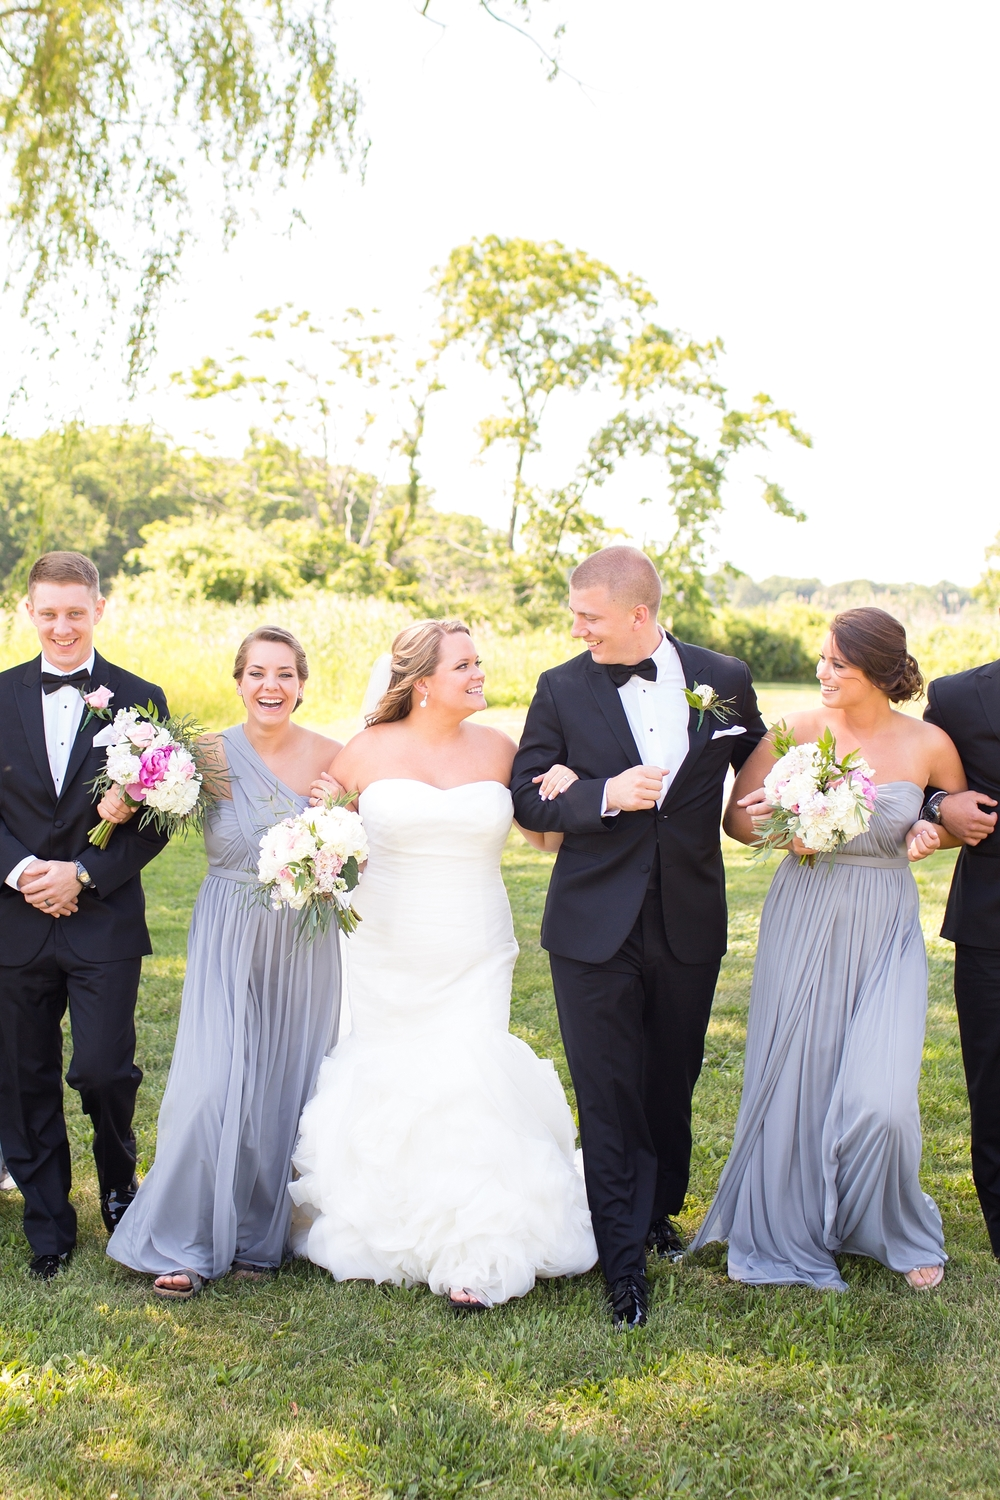 Peterson 4-Bridal Party-347_anna grace photography milford connecticut destination wedding photographer Great River Country Club photo.jpg